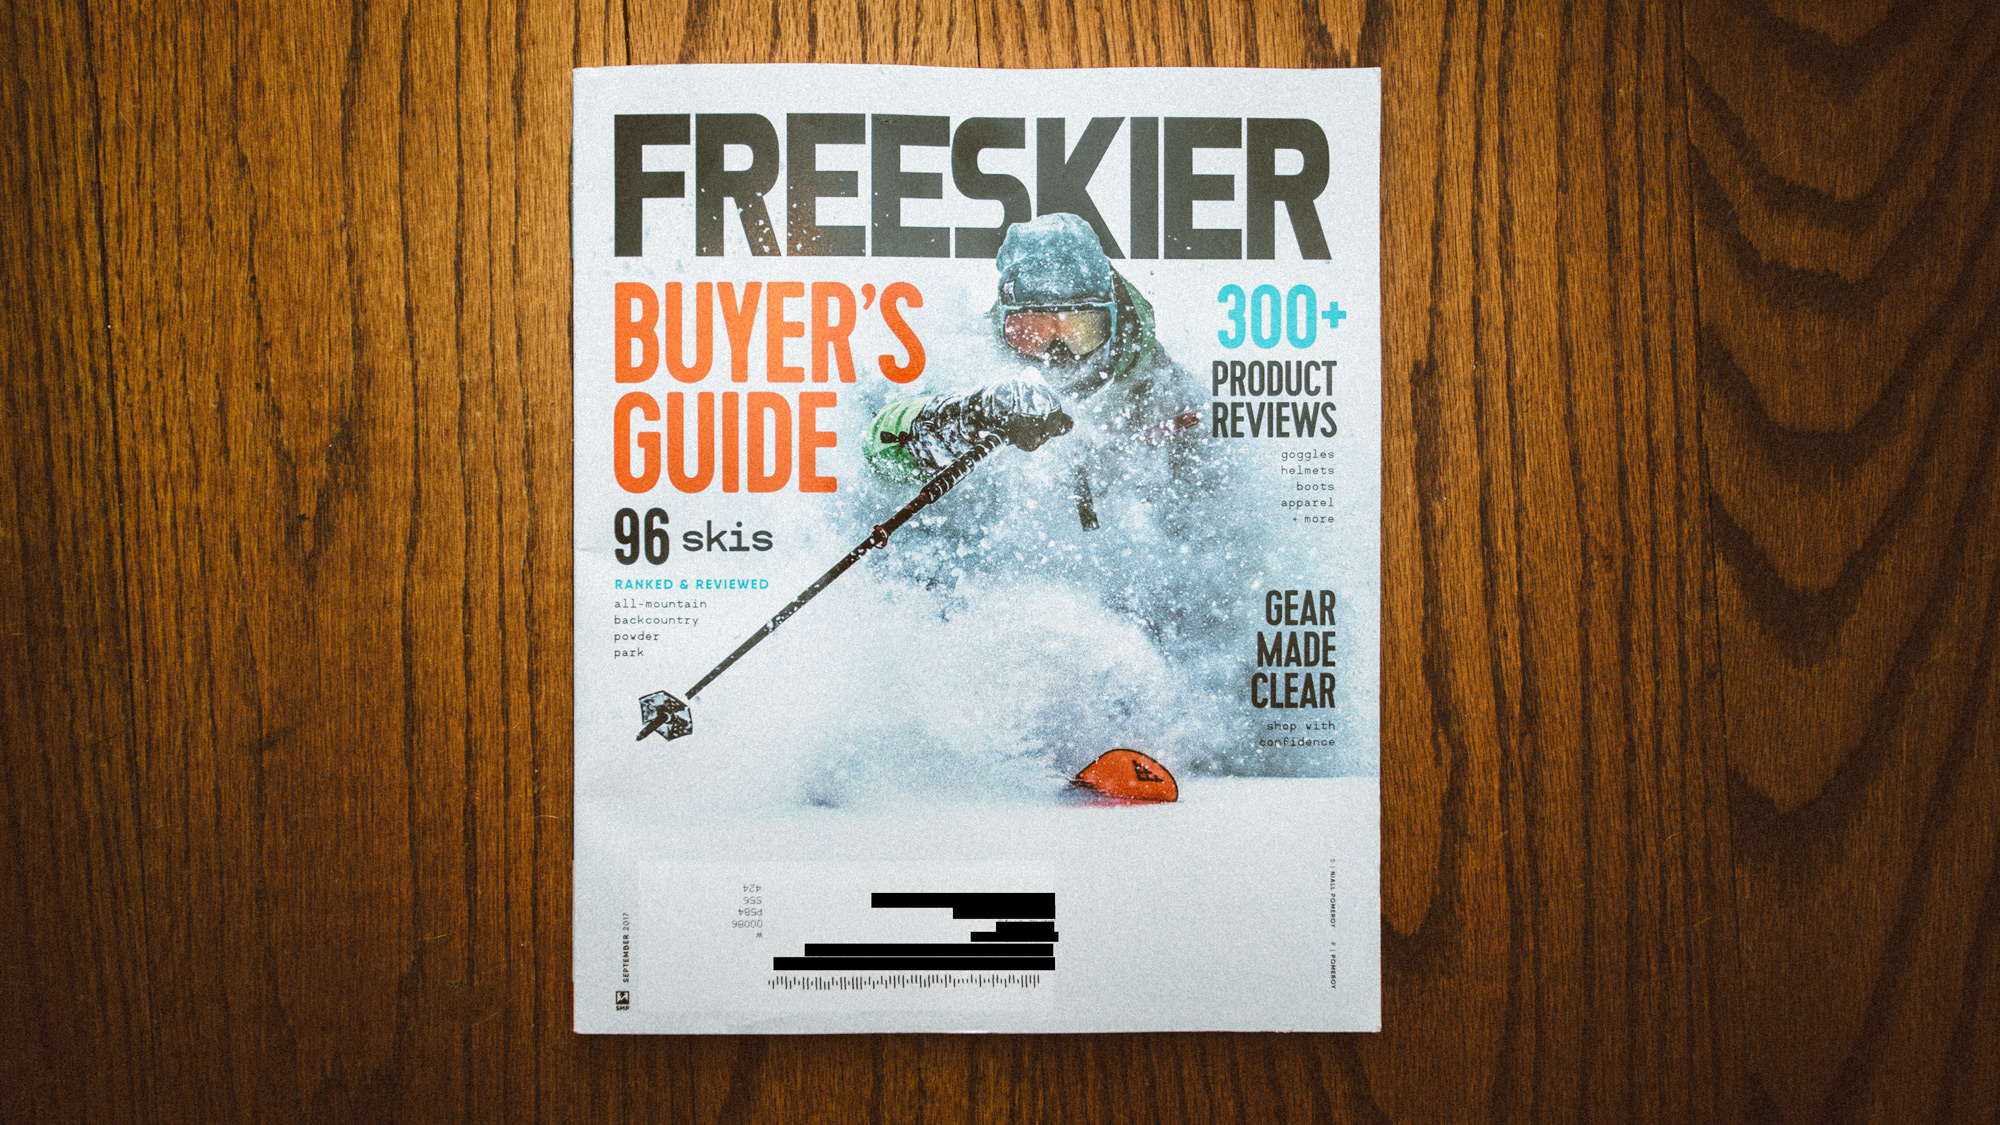 2018 Freeskier Magazine Ski Buyer's Guide - Dan Brown © Kapitol Photography